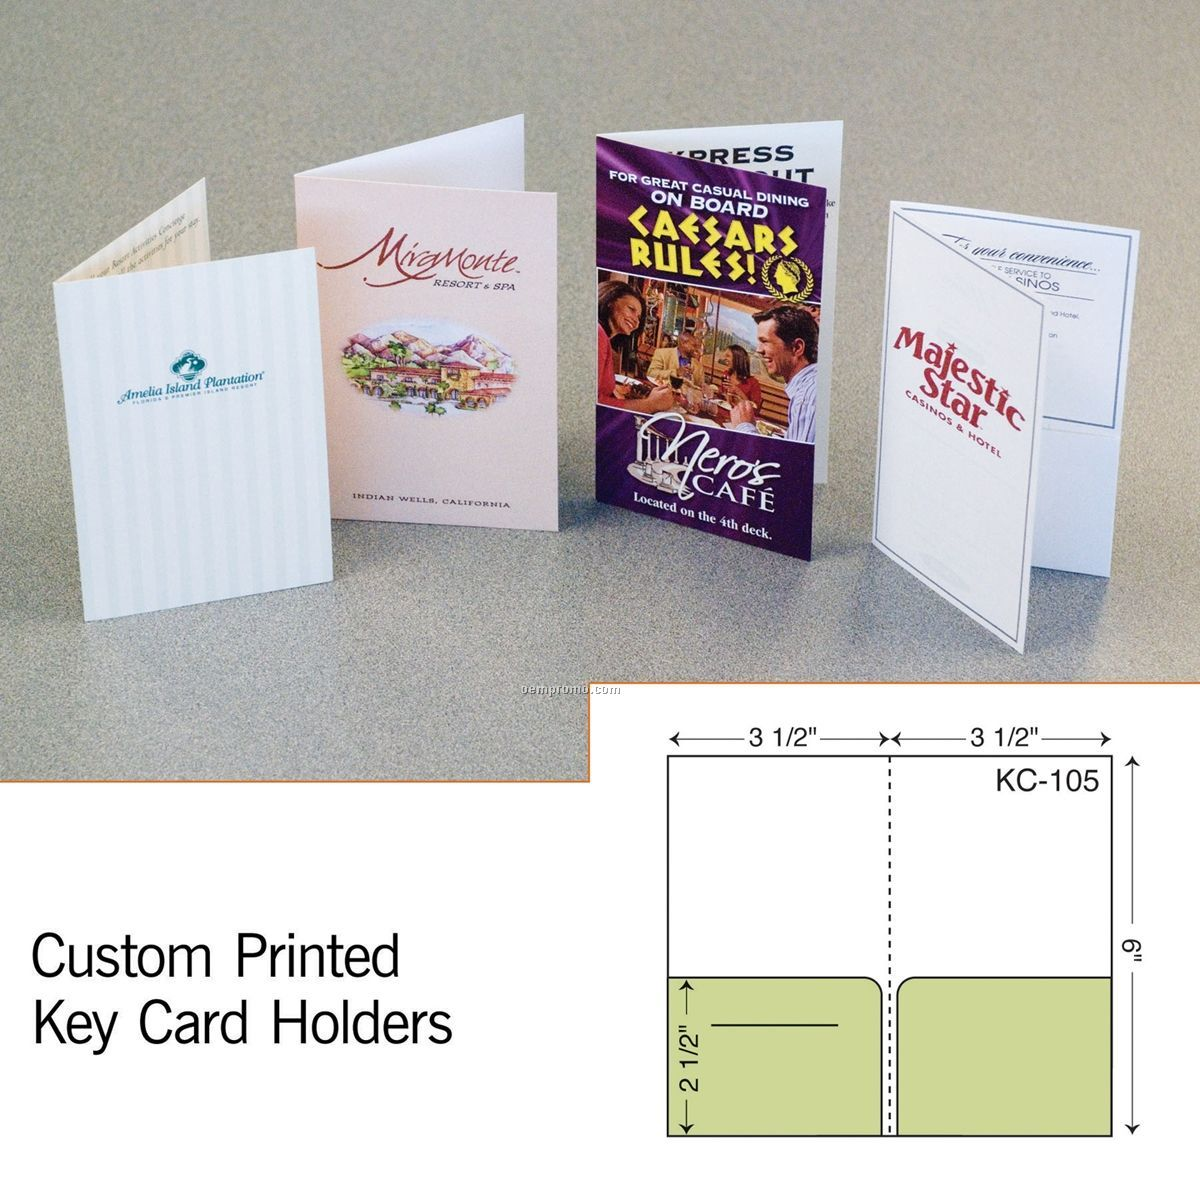 Key Card W/ Double Pockets (1 Color/1 Side)